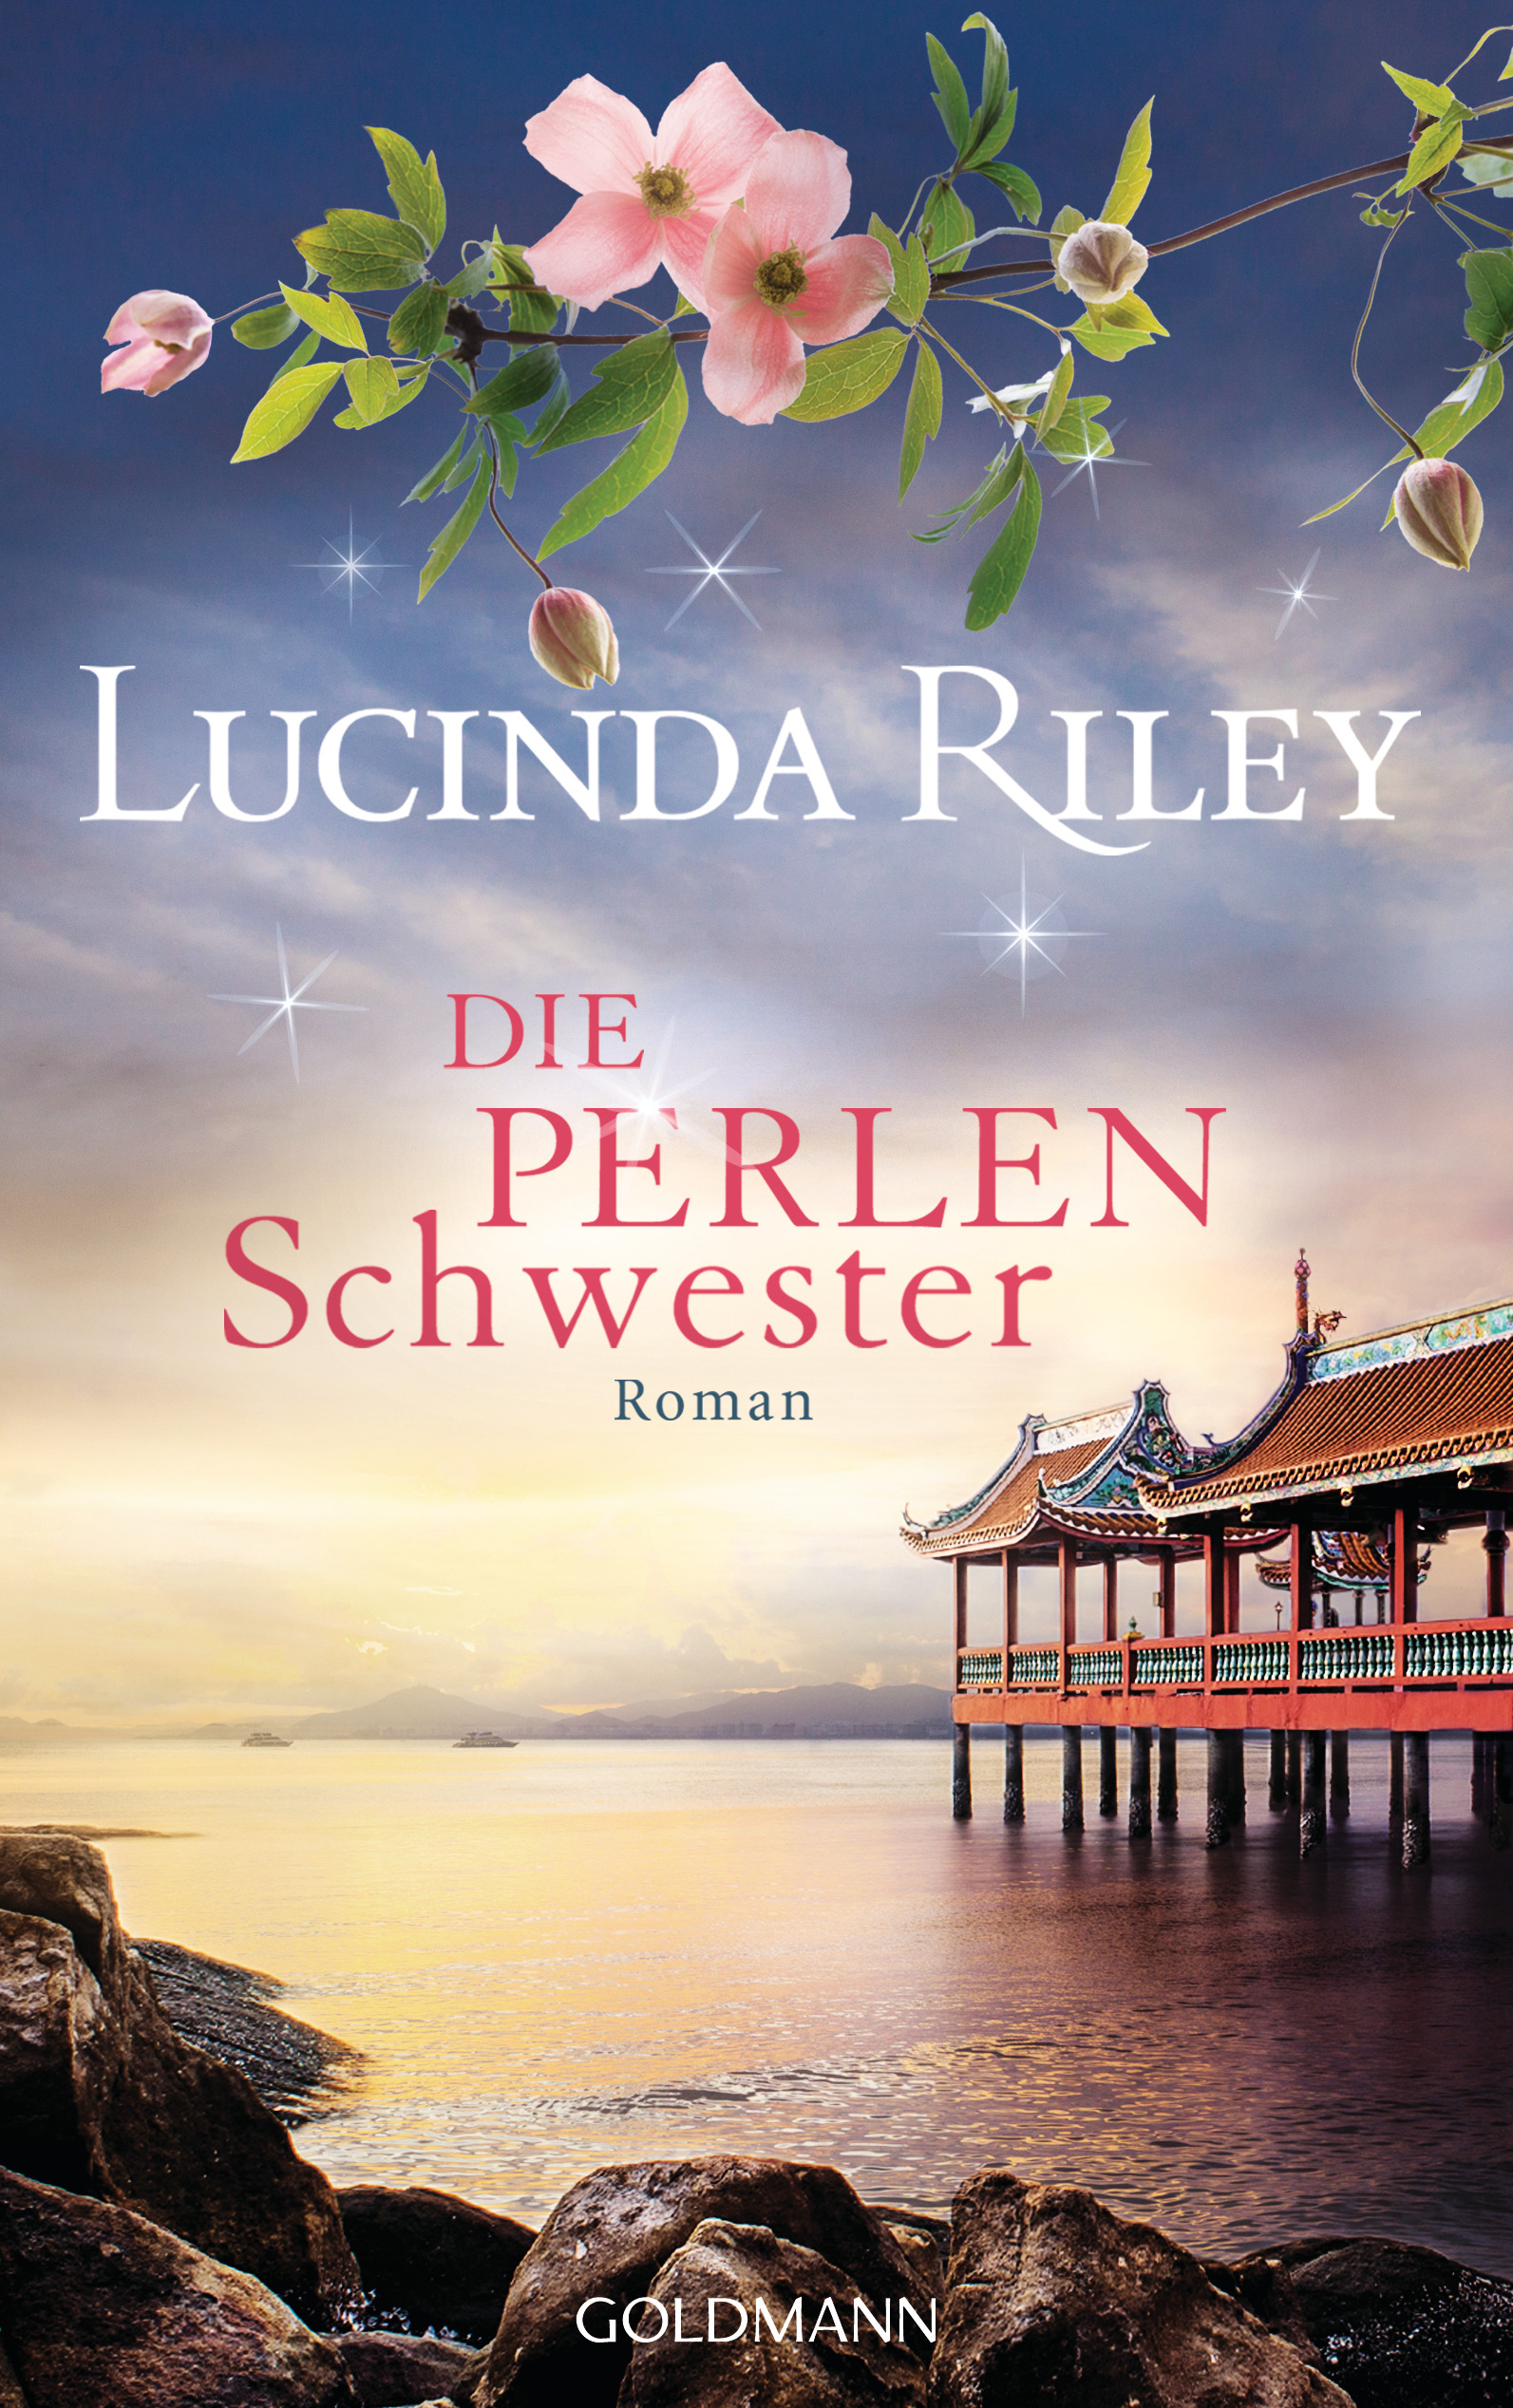 https://www.randomhouse.de/ebook/Die-Perlenschwester/Lucinda-Riley/Goldmann/e510481.rhd